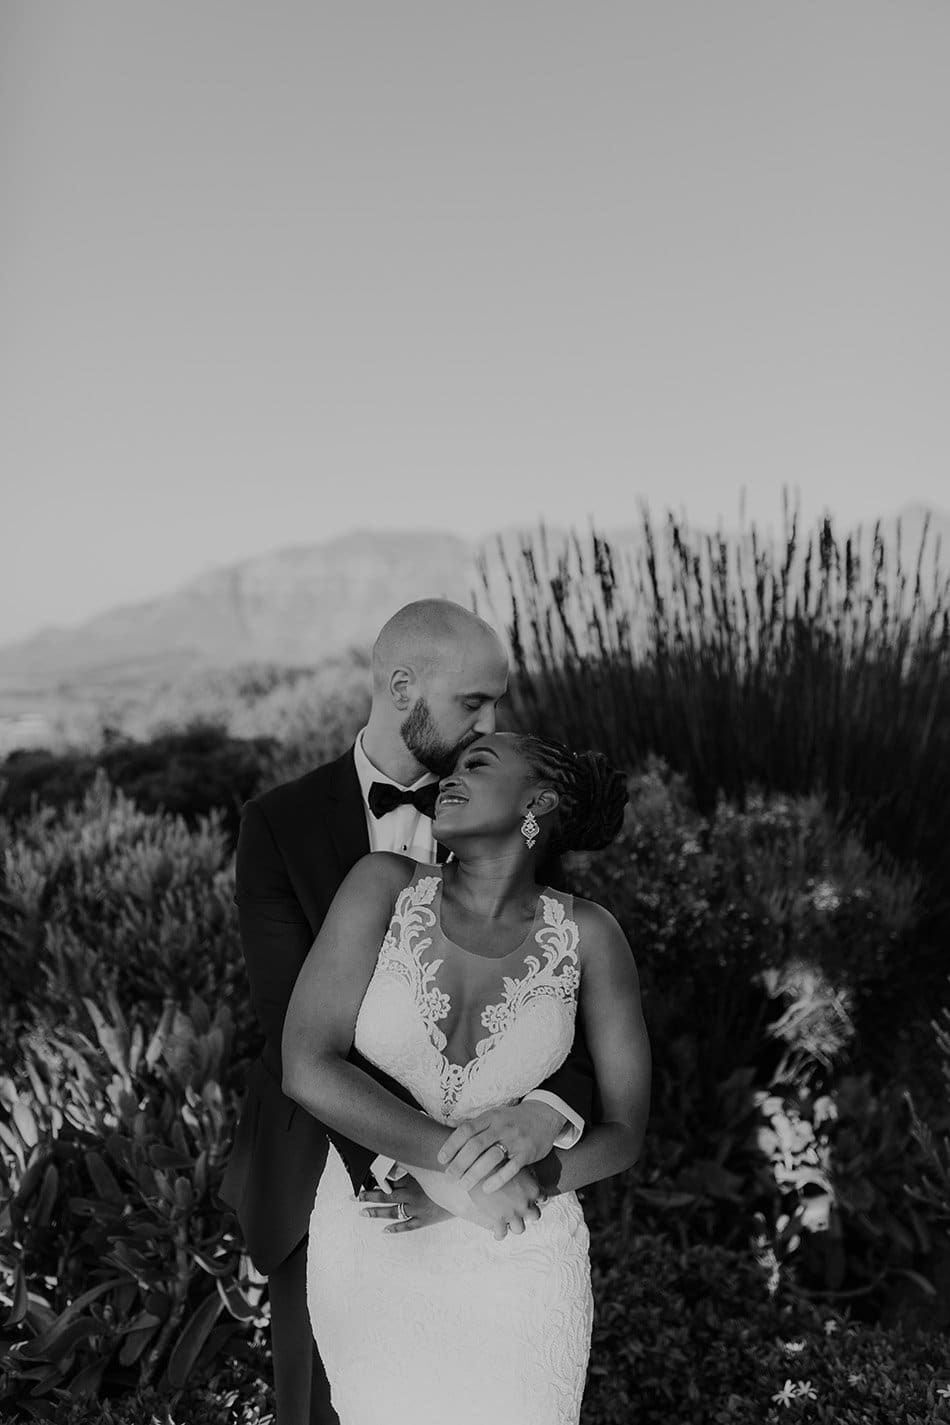 cavalli wine estate - cavalli wedding - somerset west wedding photographers - Duane smith photography - mante & andrew - married (2)